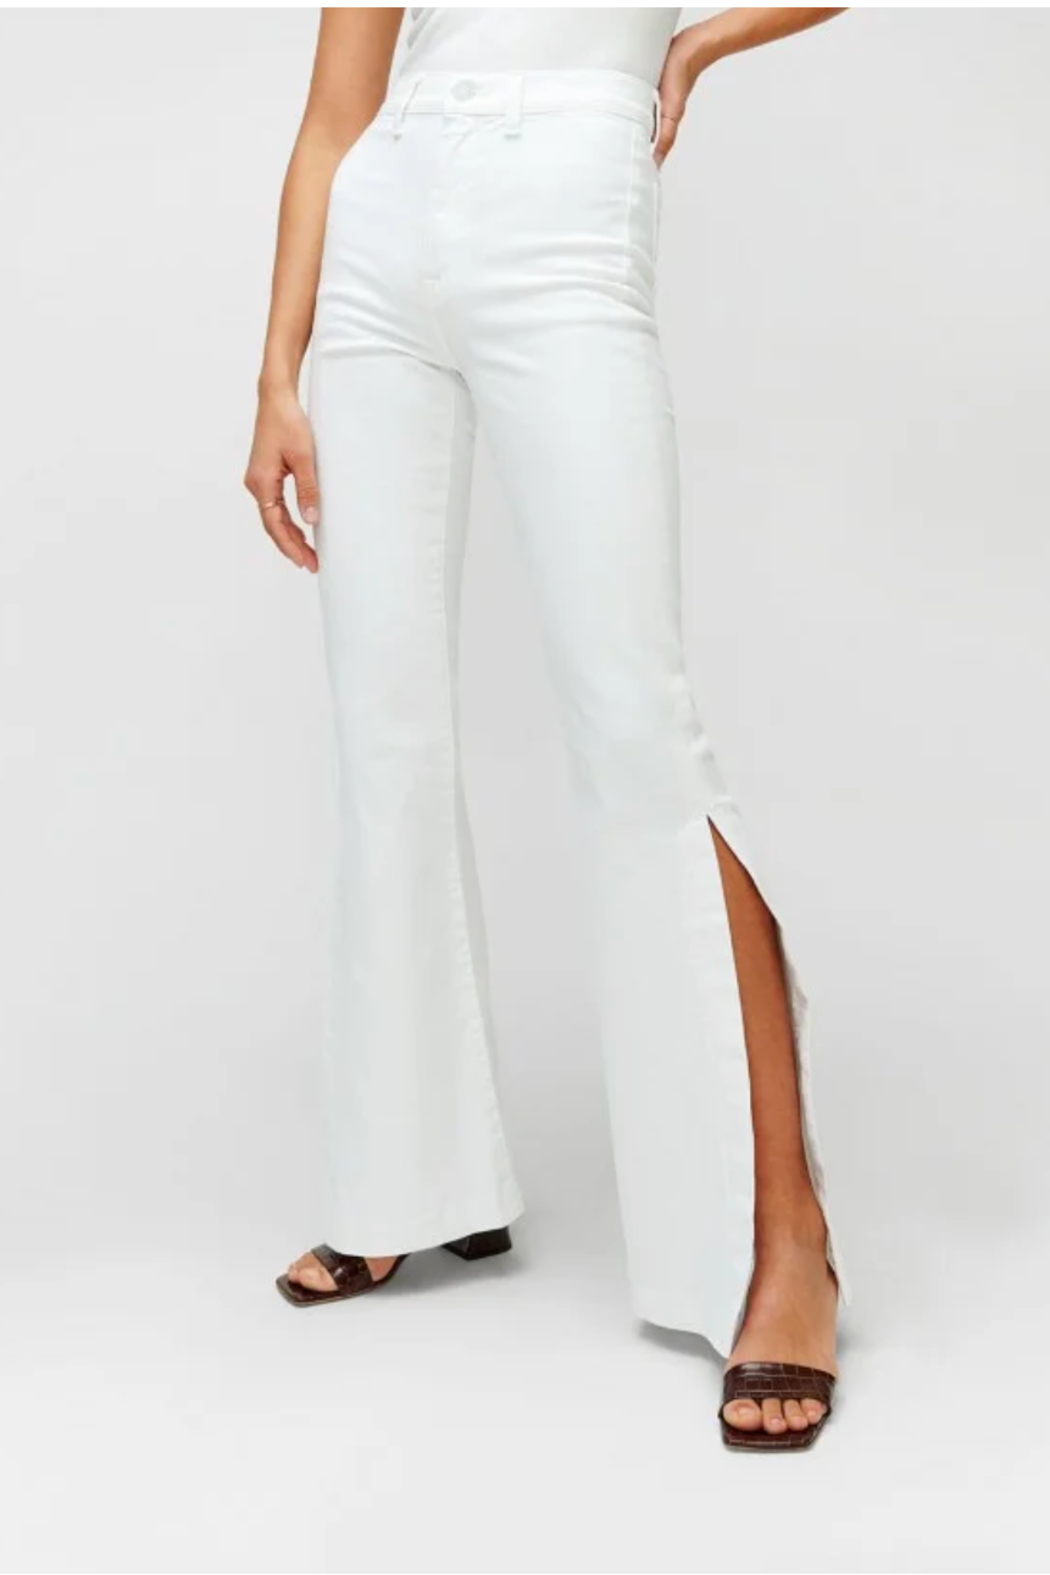 7 For all Mankind Prince High Slit Flare Jeans - Front Full Image